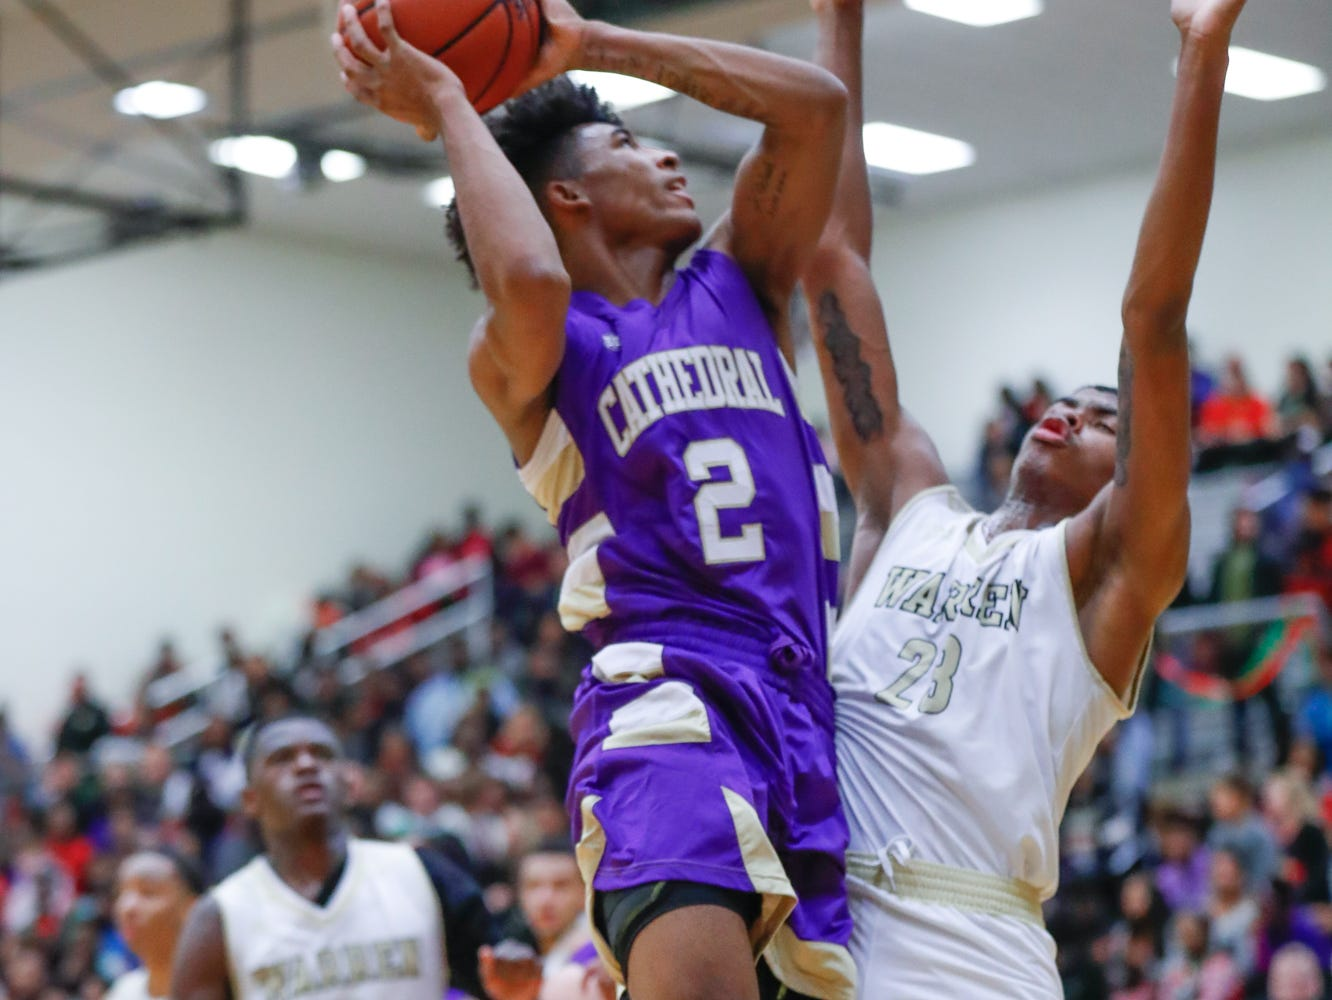 Cathedral High School's guard Armaan Franklin (2) shoots a basket over Warren Central High School's Jacobi Robinson (23), during a varsity boys basketball game between Cathedral High School and Warren Central High School at Warren Central on Friday, Dec. 7, 2018.